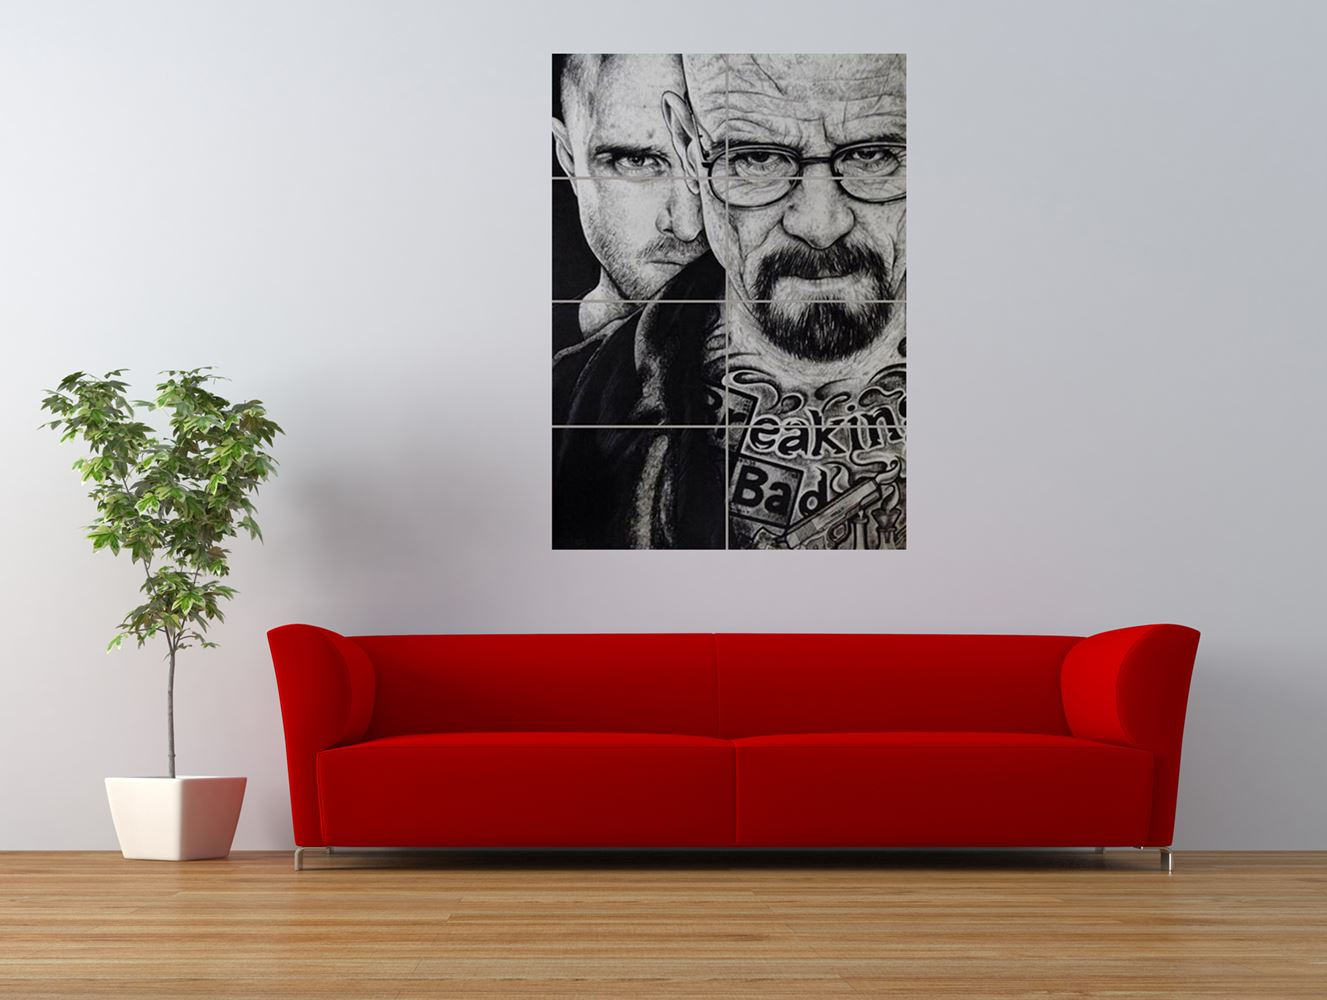 wm breaking bad drawing walt jesse tattoo giant art print panel poster nor0579 ebay. Black Bedroom Furniture Sets. Home Design Ideas